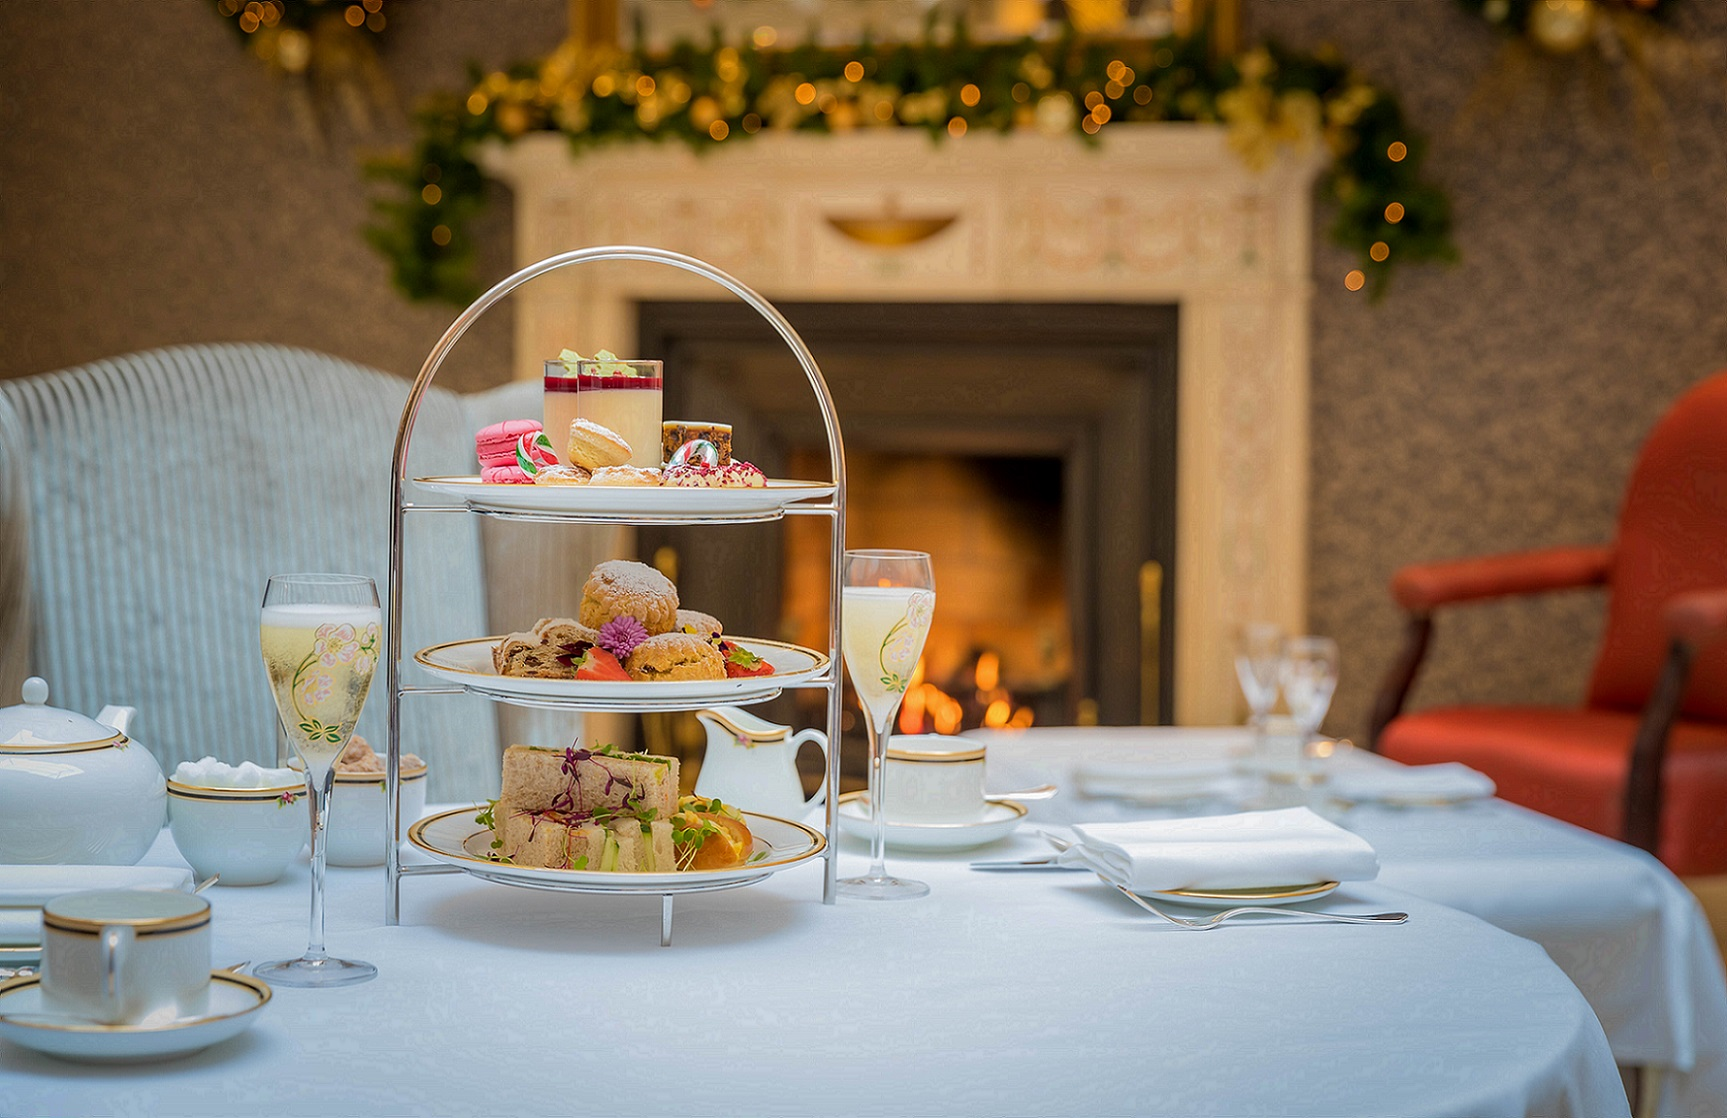 Festive Afternoon Tea with champagne at atrium lounge